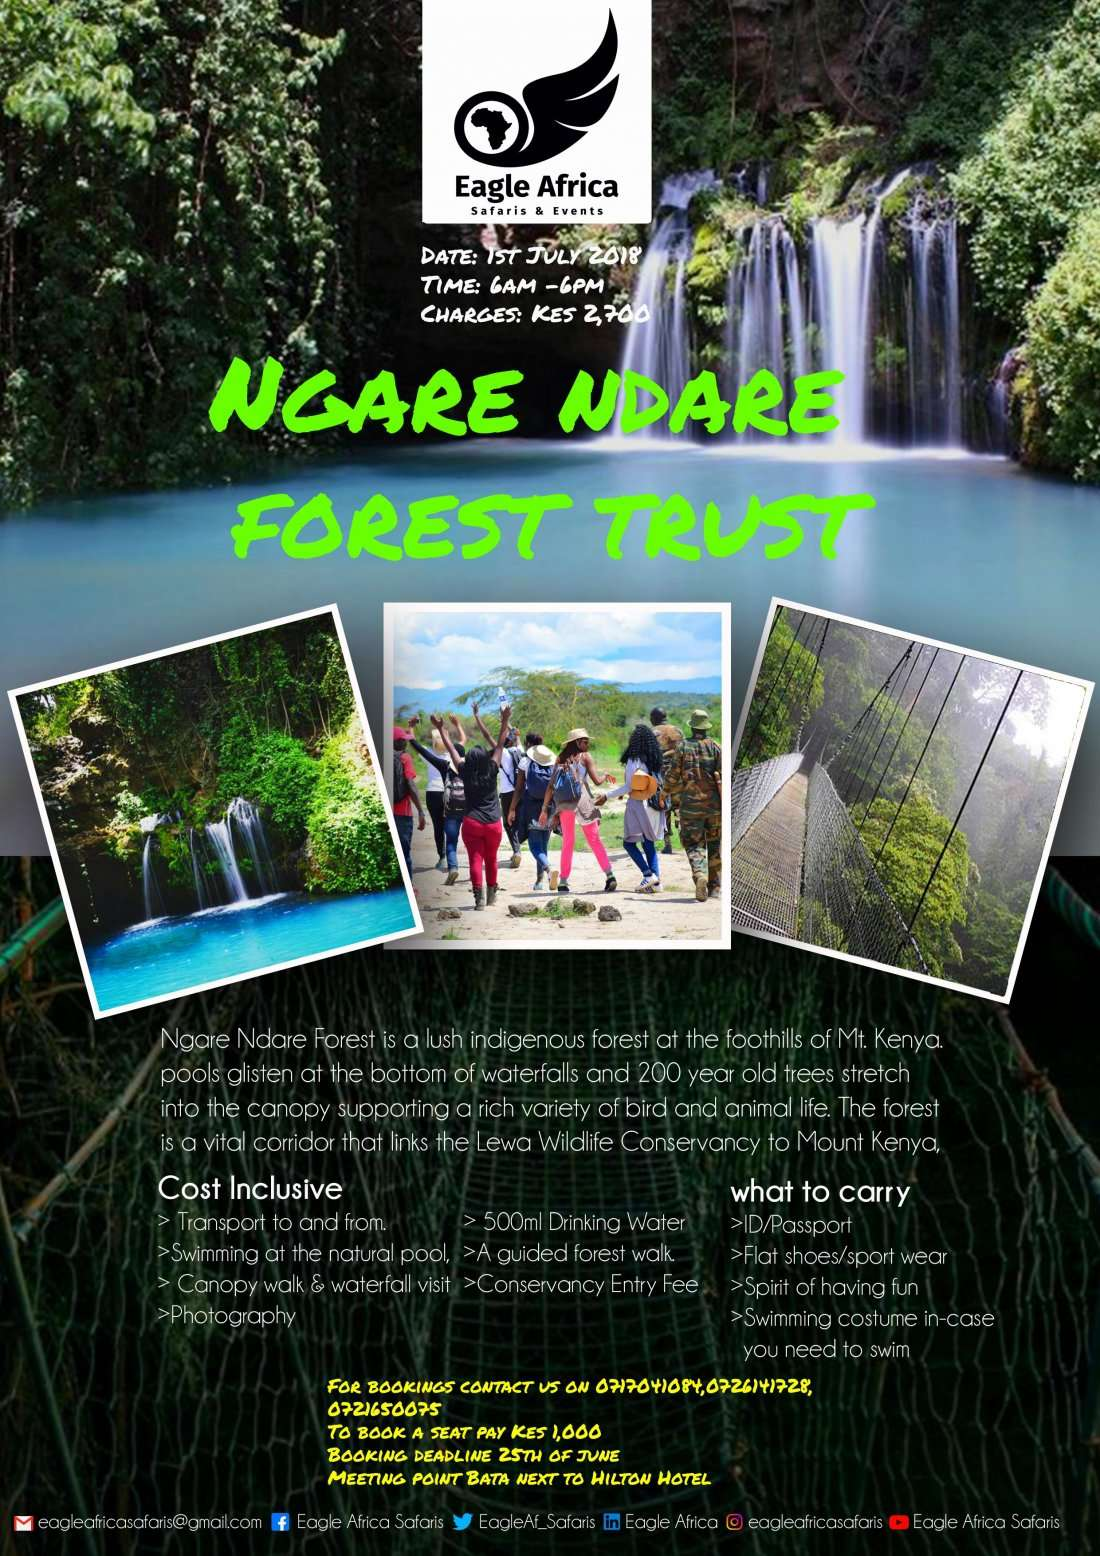 NGARE NDARE FOREST TRUST (experience canopy walk & natura blue pool)